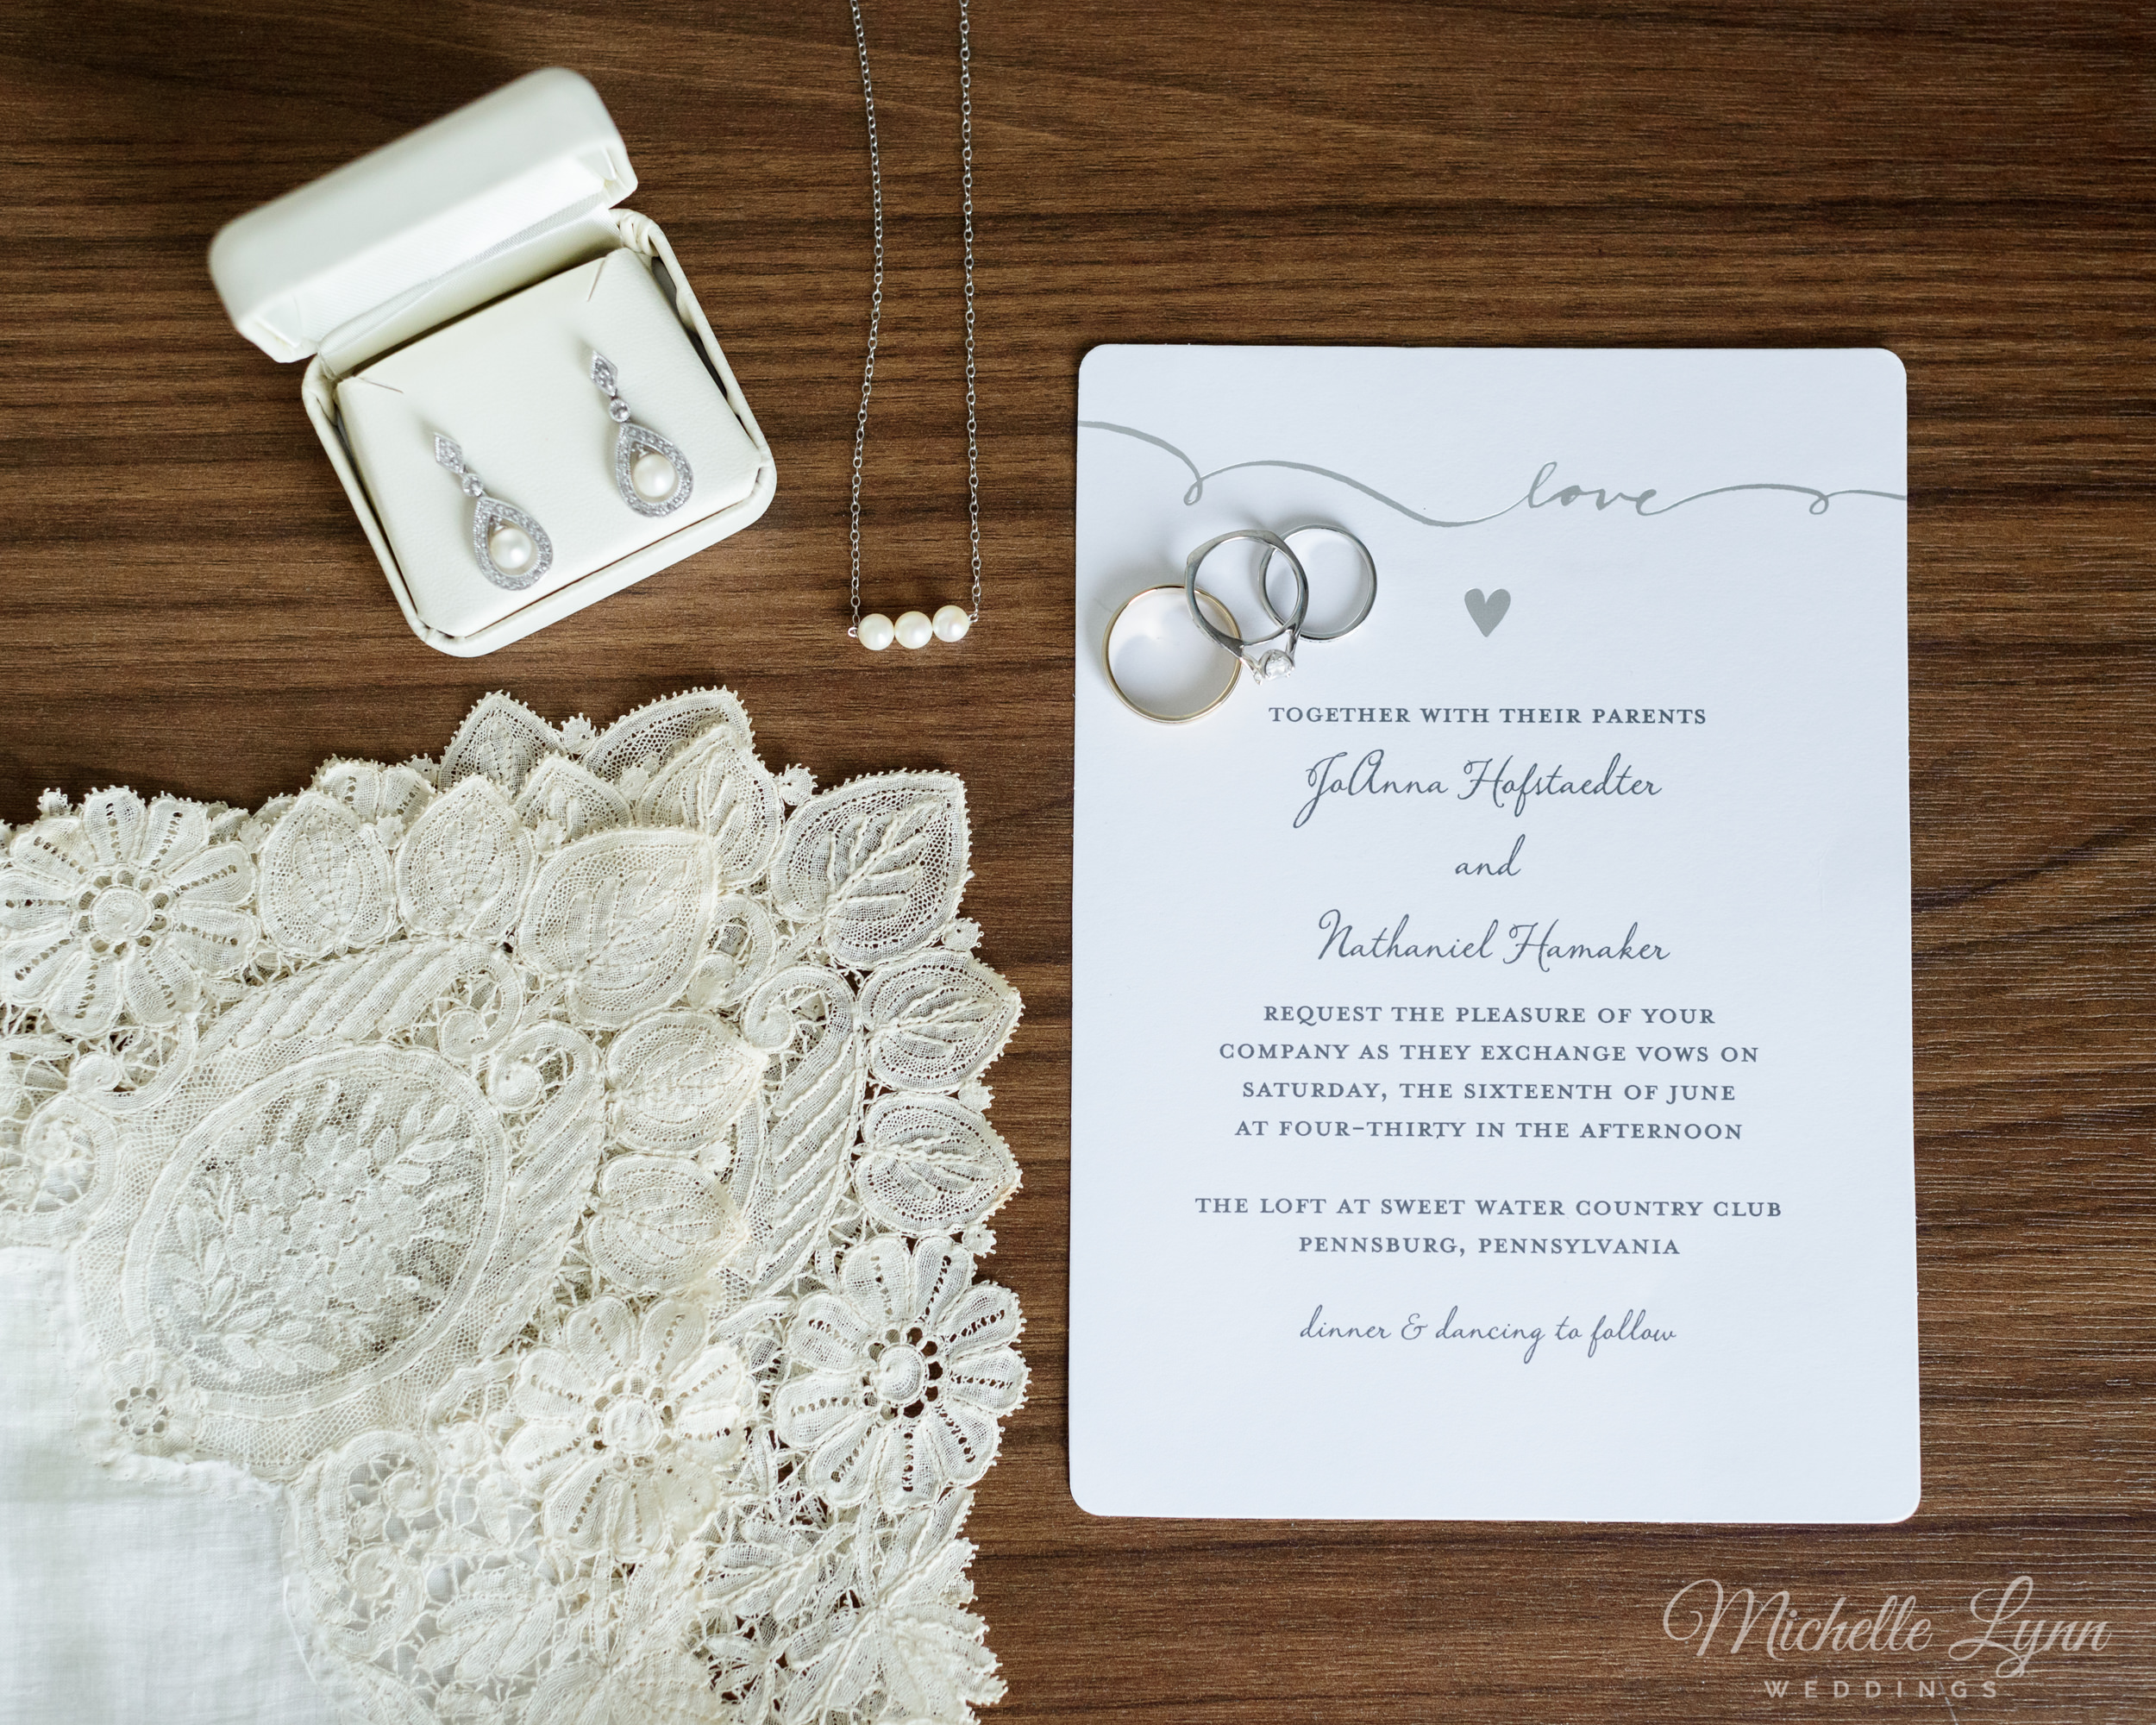 mlw-loft-at-sweet-water-country-club-wedding-photography-2.jpg